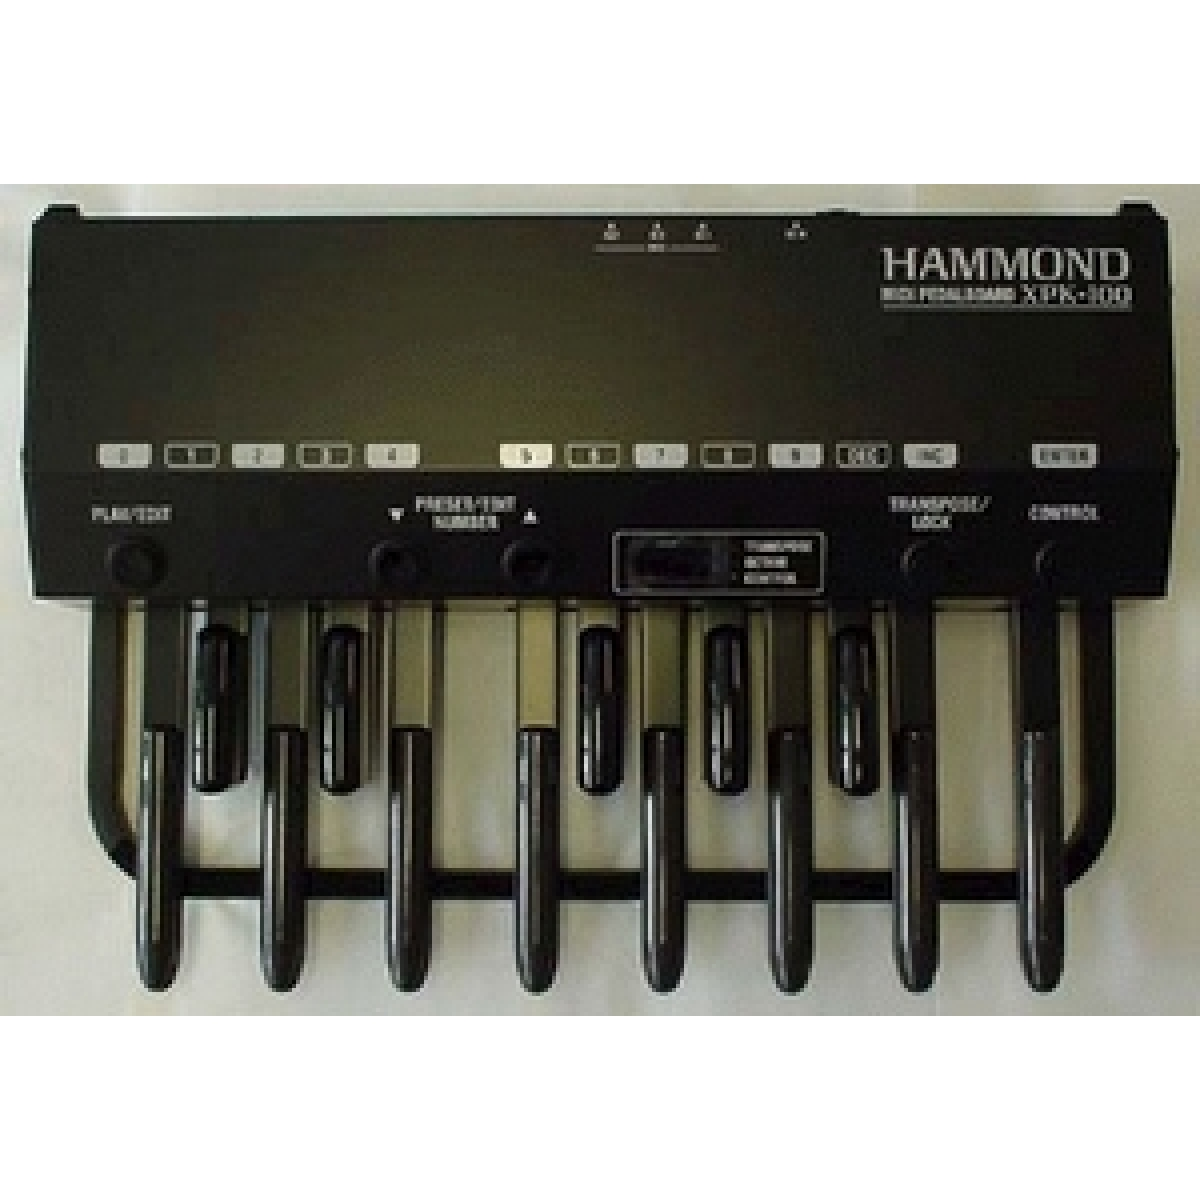 hammond hammond organs midi pedal boards hammond xpk100 midi pedal board at promenade music. Black Bedroom Furniture Sets. Home Design Ideas